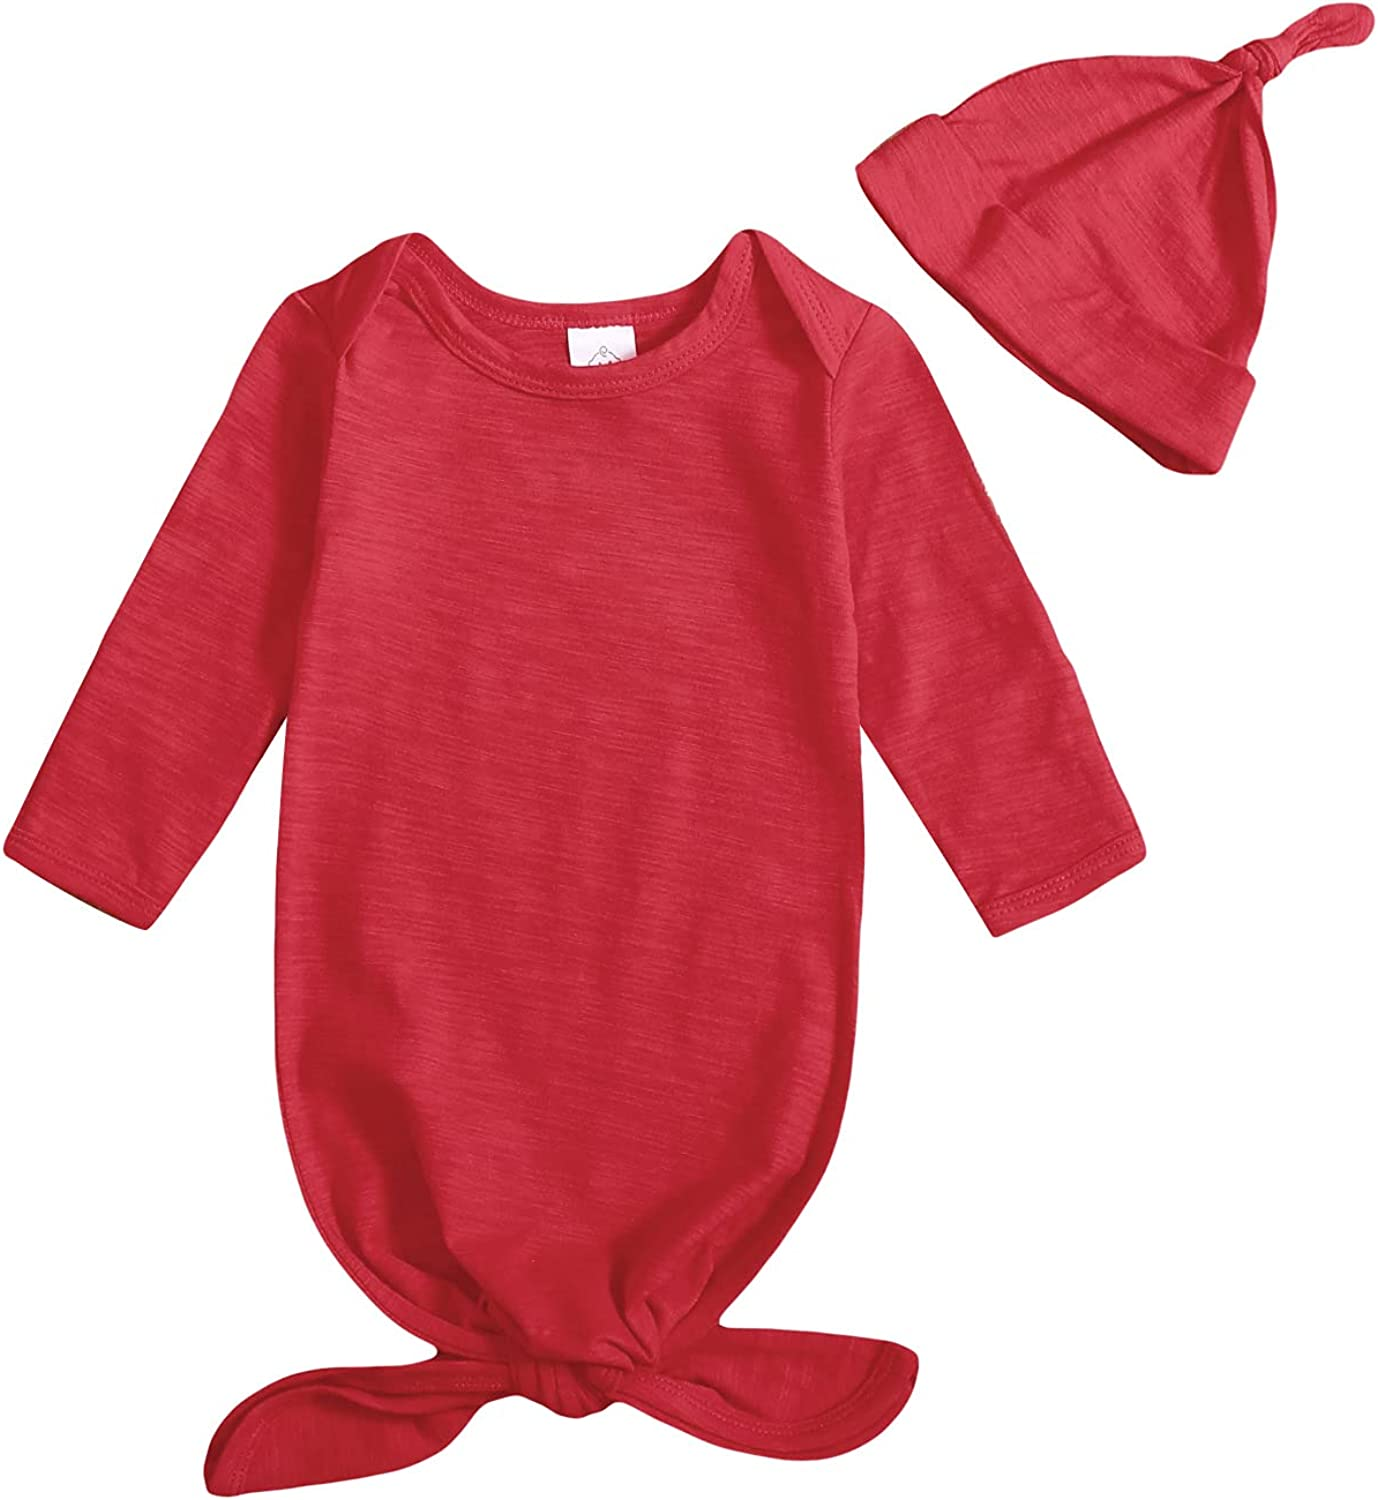 OPAWO Unisex Baby Solid Sleeper Gown with Mitten Cuffs and Matching Hat for Boys Girls